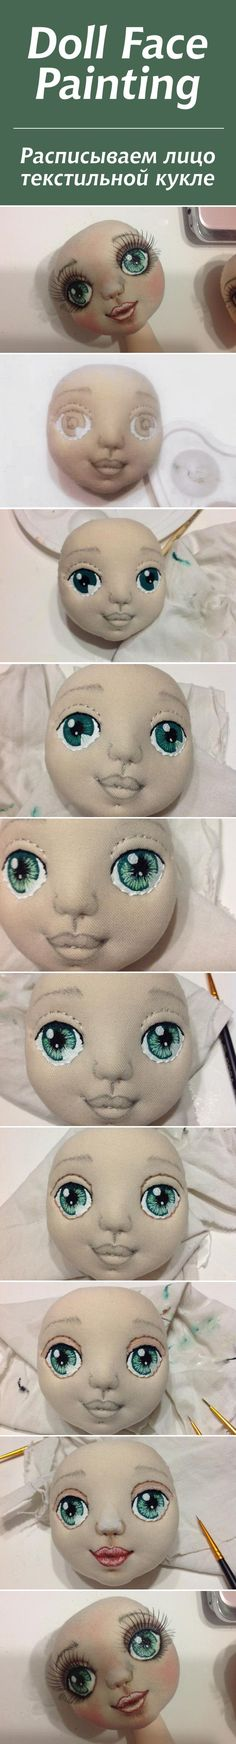 how to draw doll eyes: